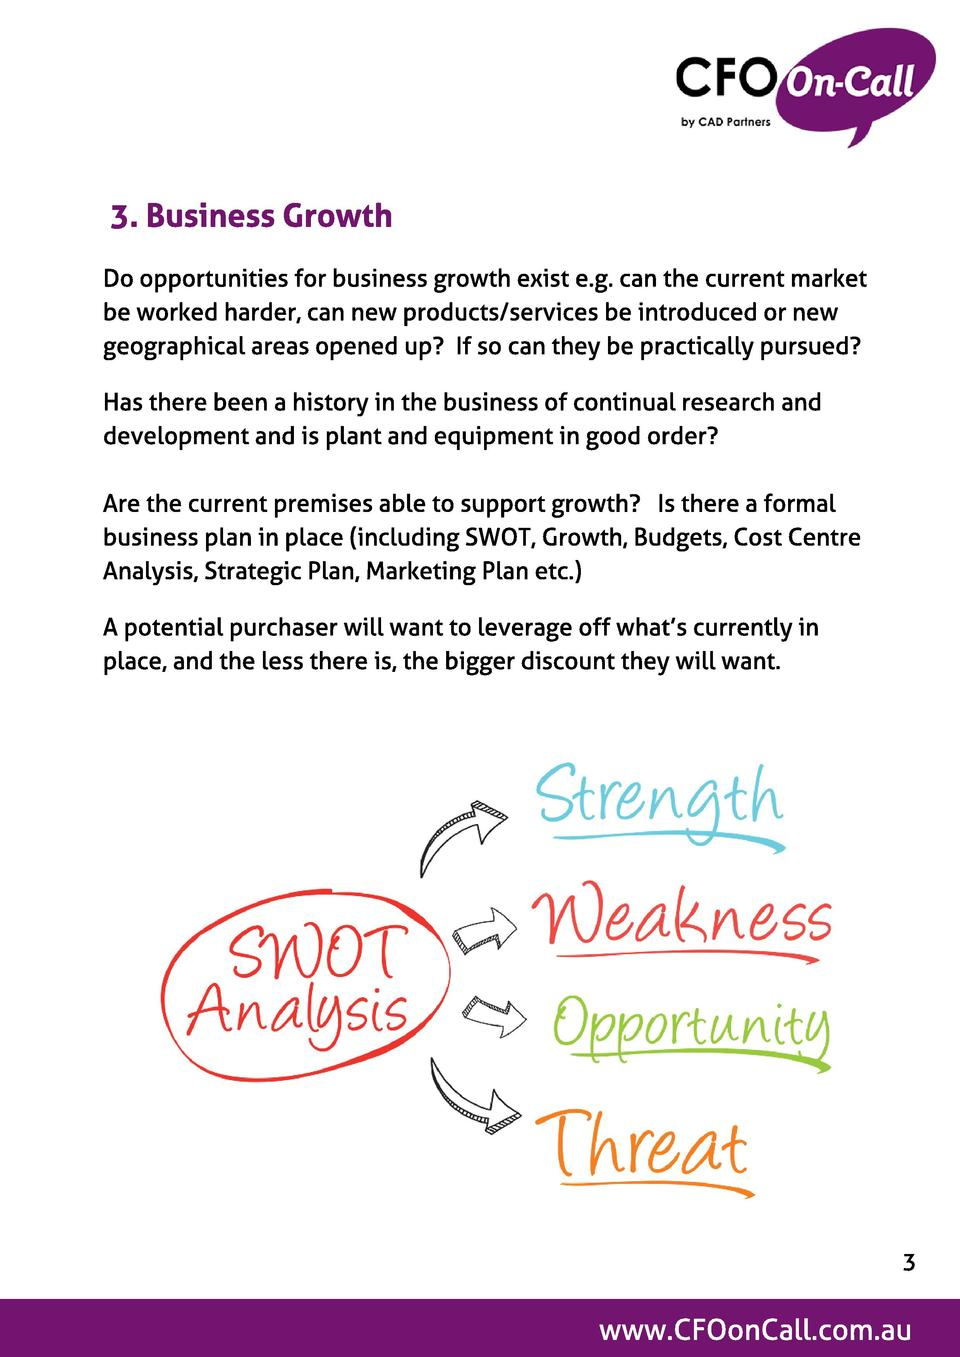 3. Business Growt h Do opportunities for business growth exist e.g. can the current market be worked harder, can new produ...